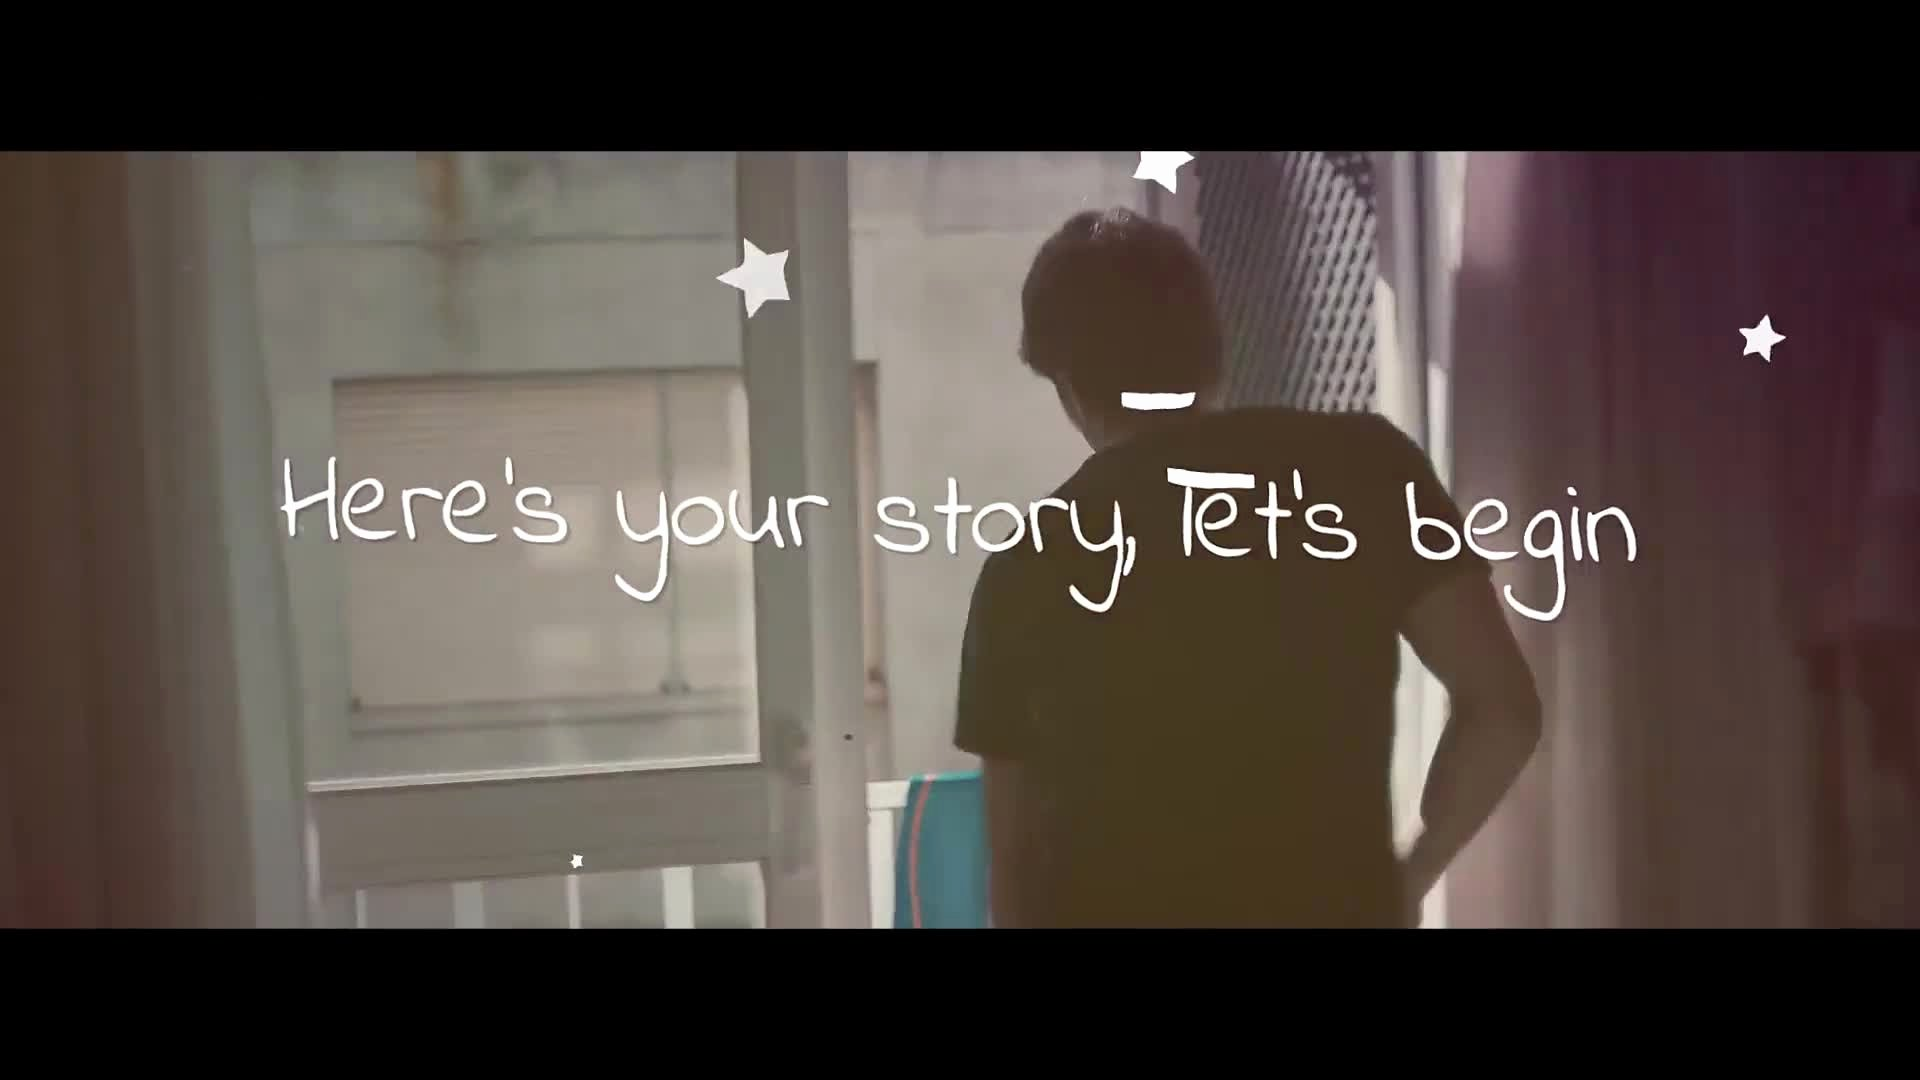 Lyric Video after Effects Fresh Lyrics Templates 3 Versions Download Videohive